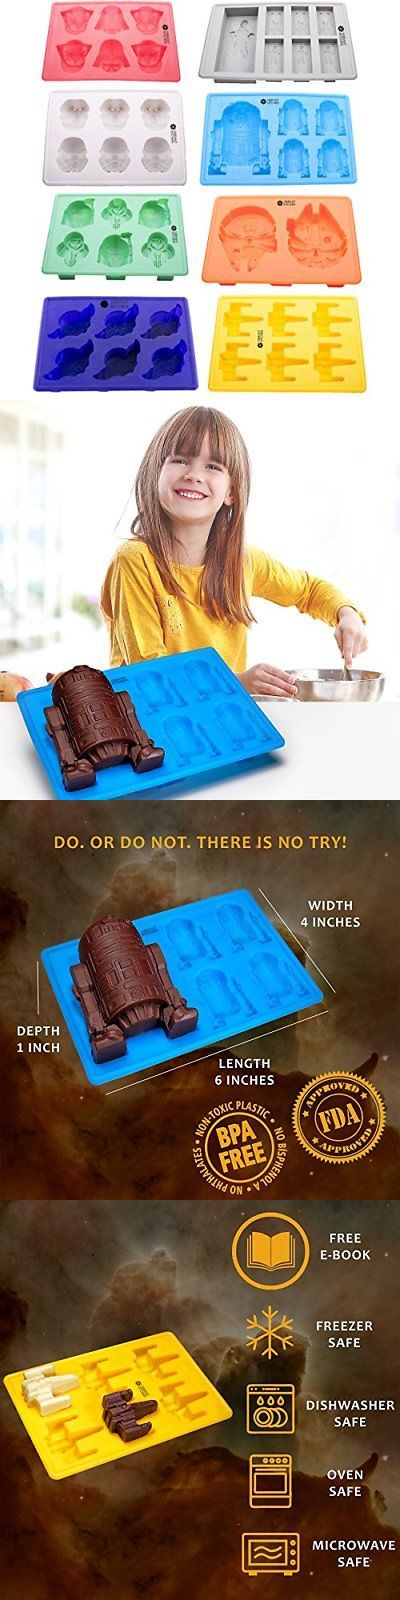 Ice Cube Trays and Molds 177015: 8 Silicone Candy Chocolate Ice Molds - Star Wars Darth Vader R2d2 Stormtrooper -> BUY IT NOW ONLY: $30.24 on eBay!